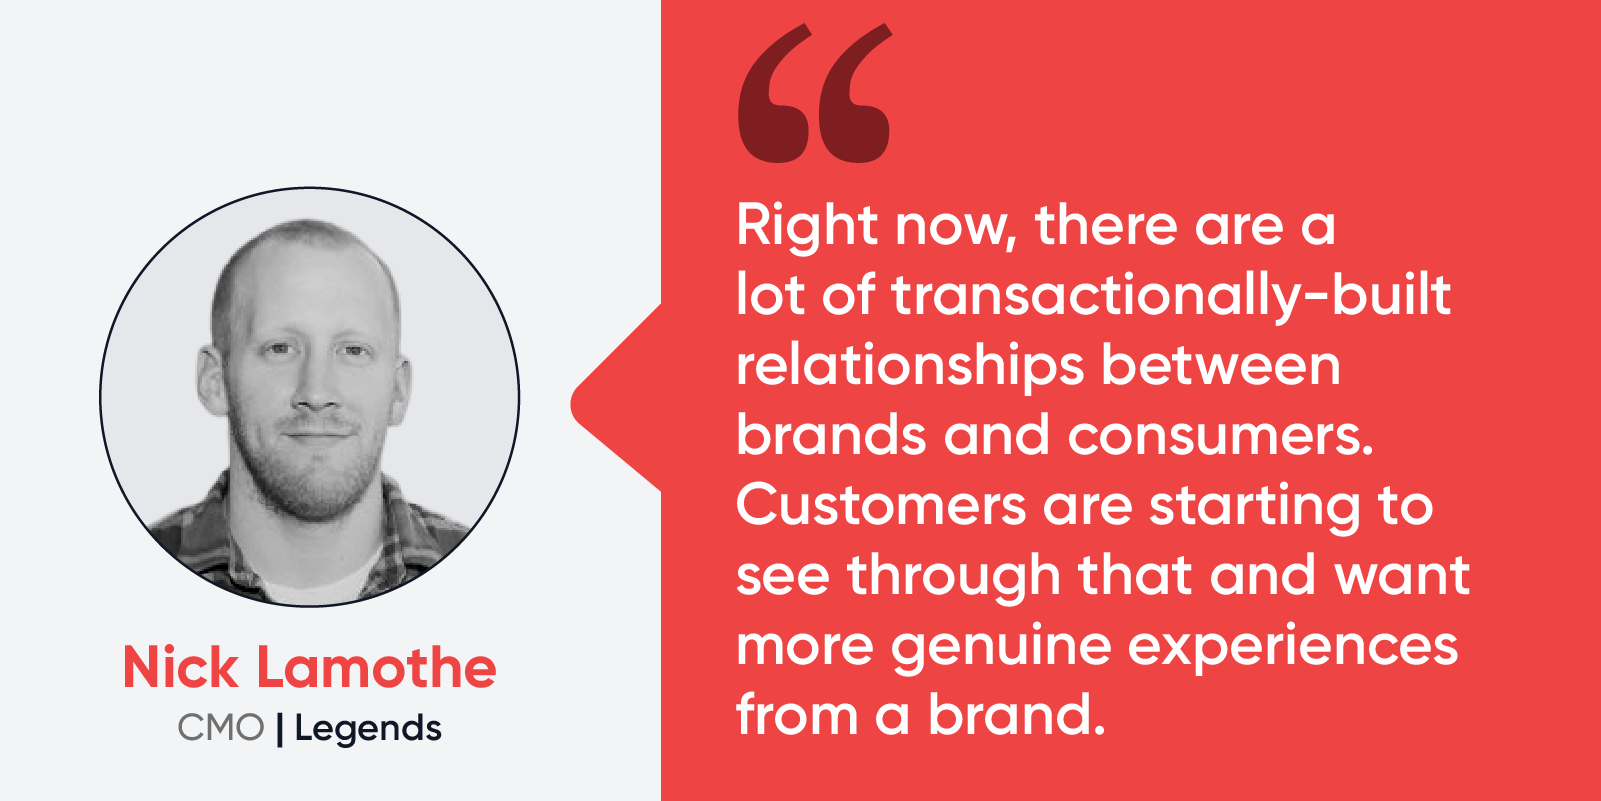 """Quote by Nick Lamothe, CMO at Legends: """"Right now, there are a lot of transactionally-built relationships between brands and consumers. Customers are starting to see through that and want more genuine experiences from a brand."""""""